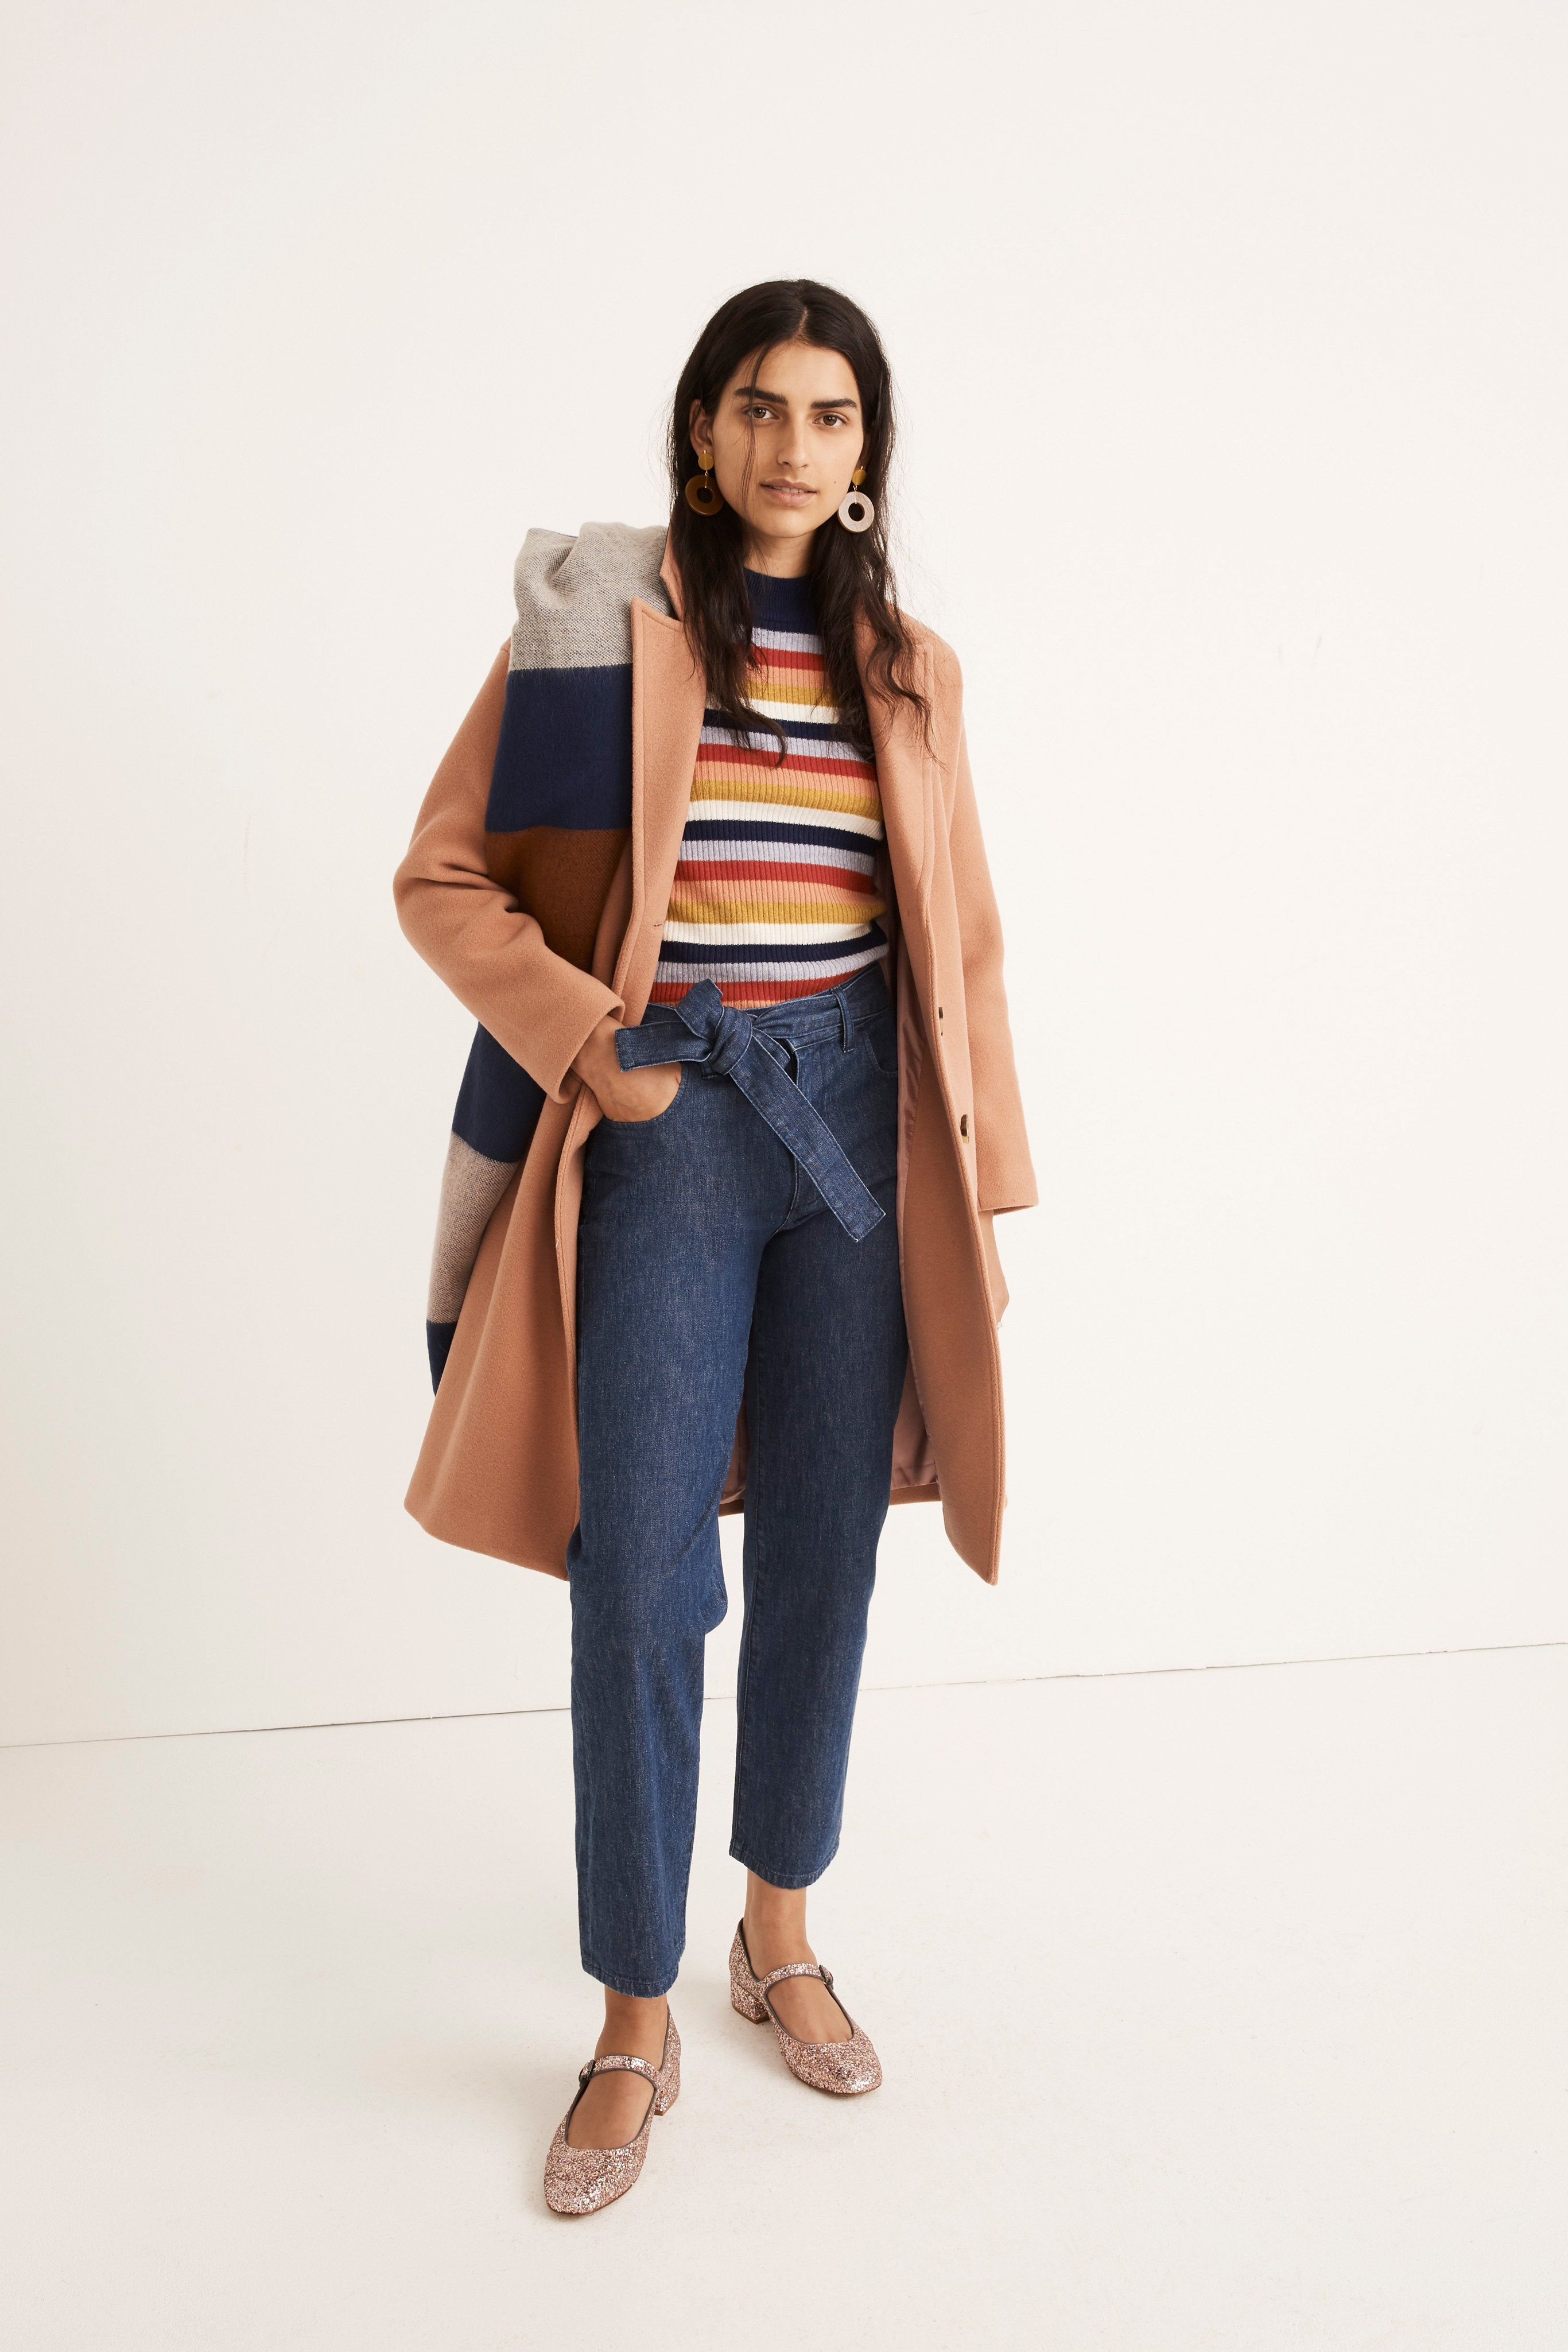 d41930a79e Madewell Fall 2018 Ready-to-Wear Fashion Show in 2018